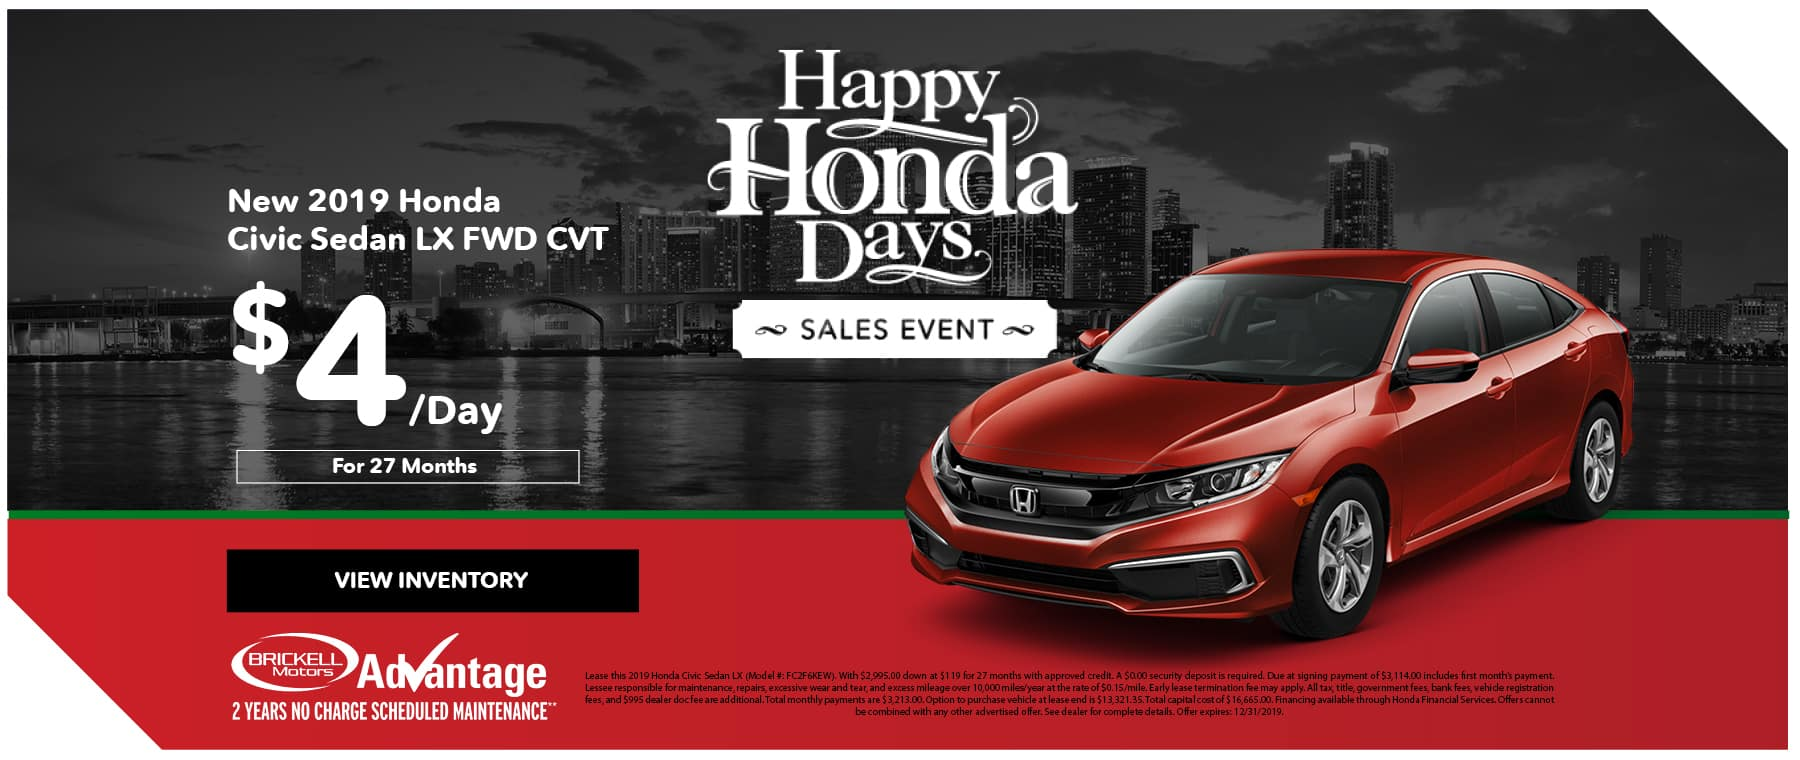 Happy Honda Days Civic Special